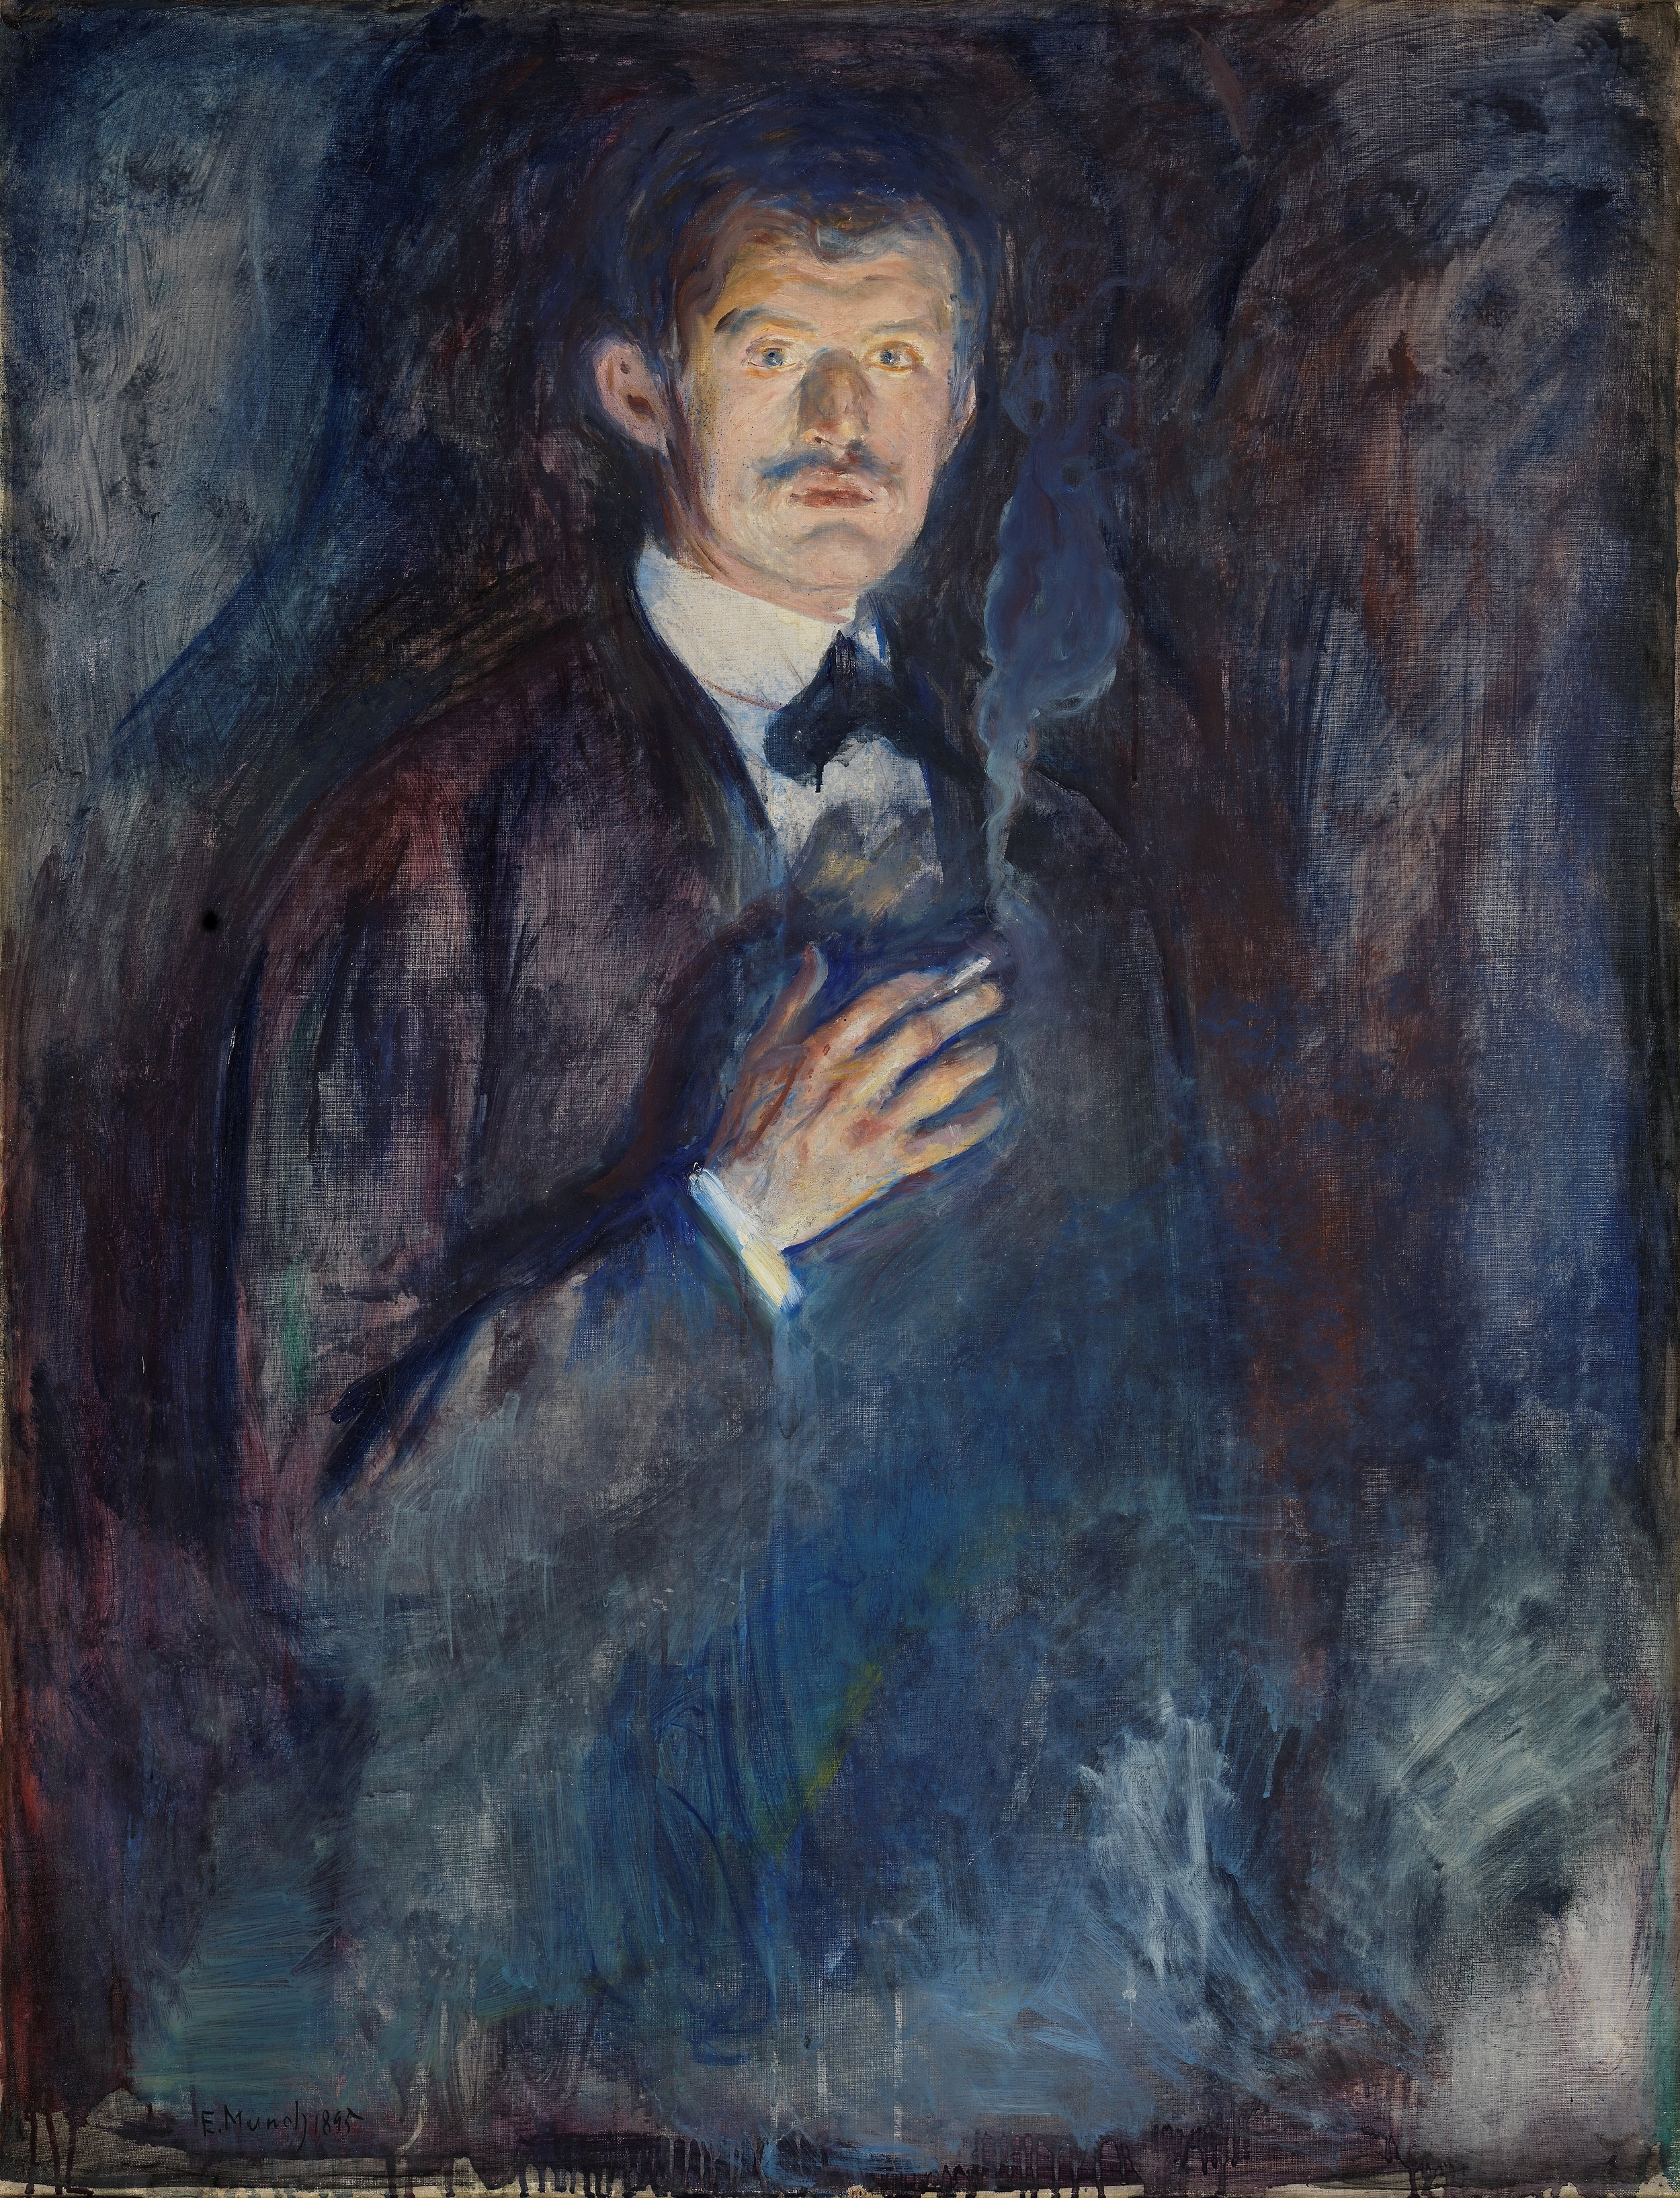 Edvard Munch, Self-Portrait with Cigarette, 1895, oil on canvas, The National Gallery of Norway. | PC: Wikimedia Commons